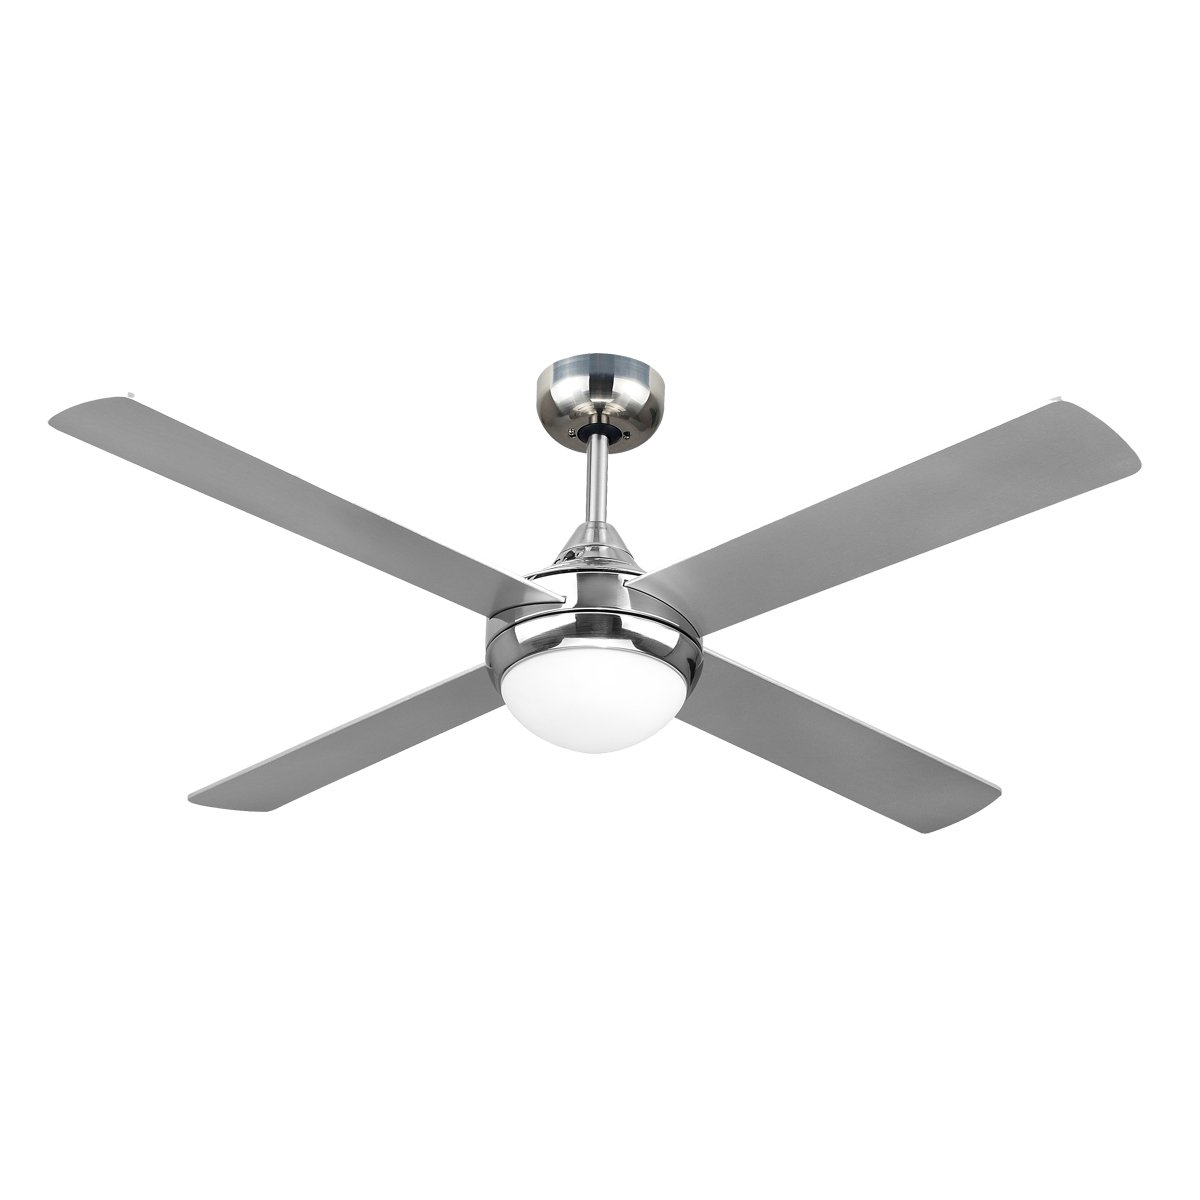 Chrome Ceiling Fans Without Lights Revolve 48 Inch Ceiling Fan Brushed Chrome With Light